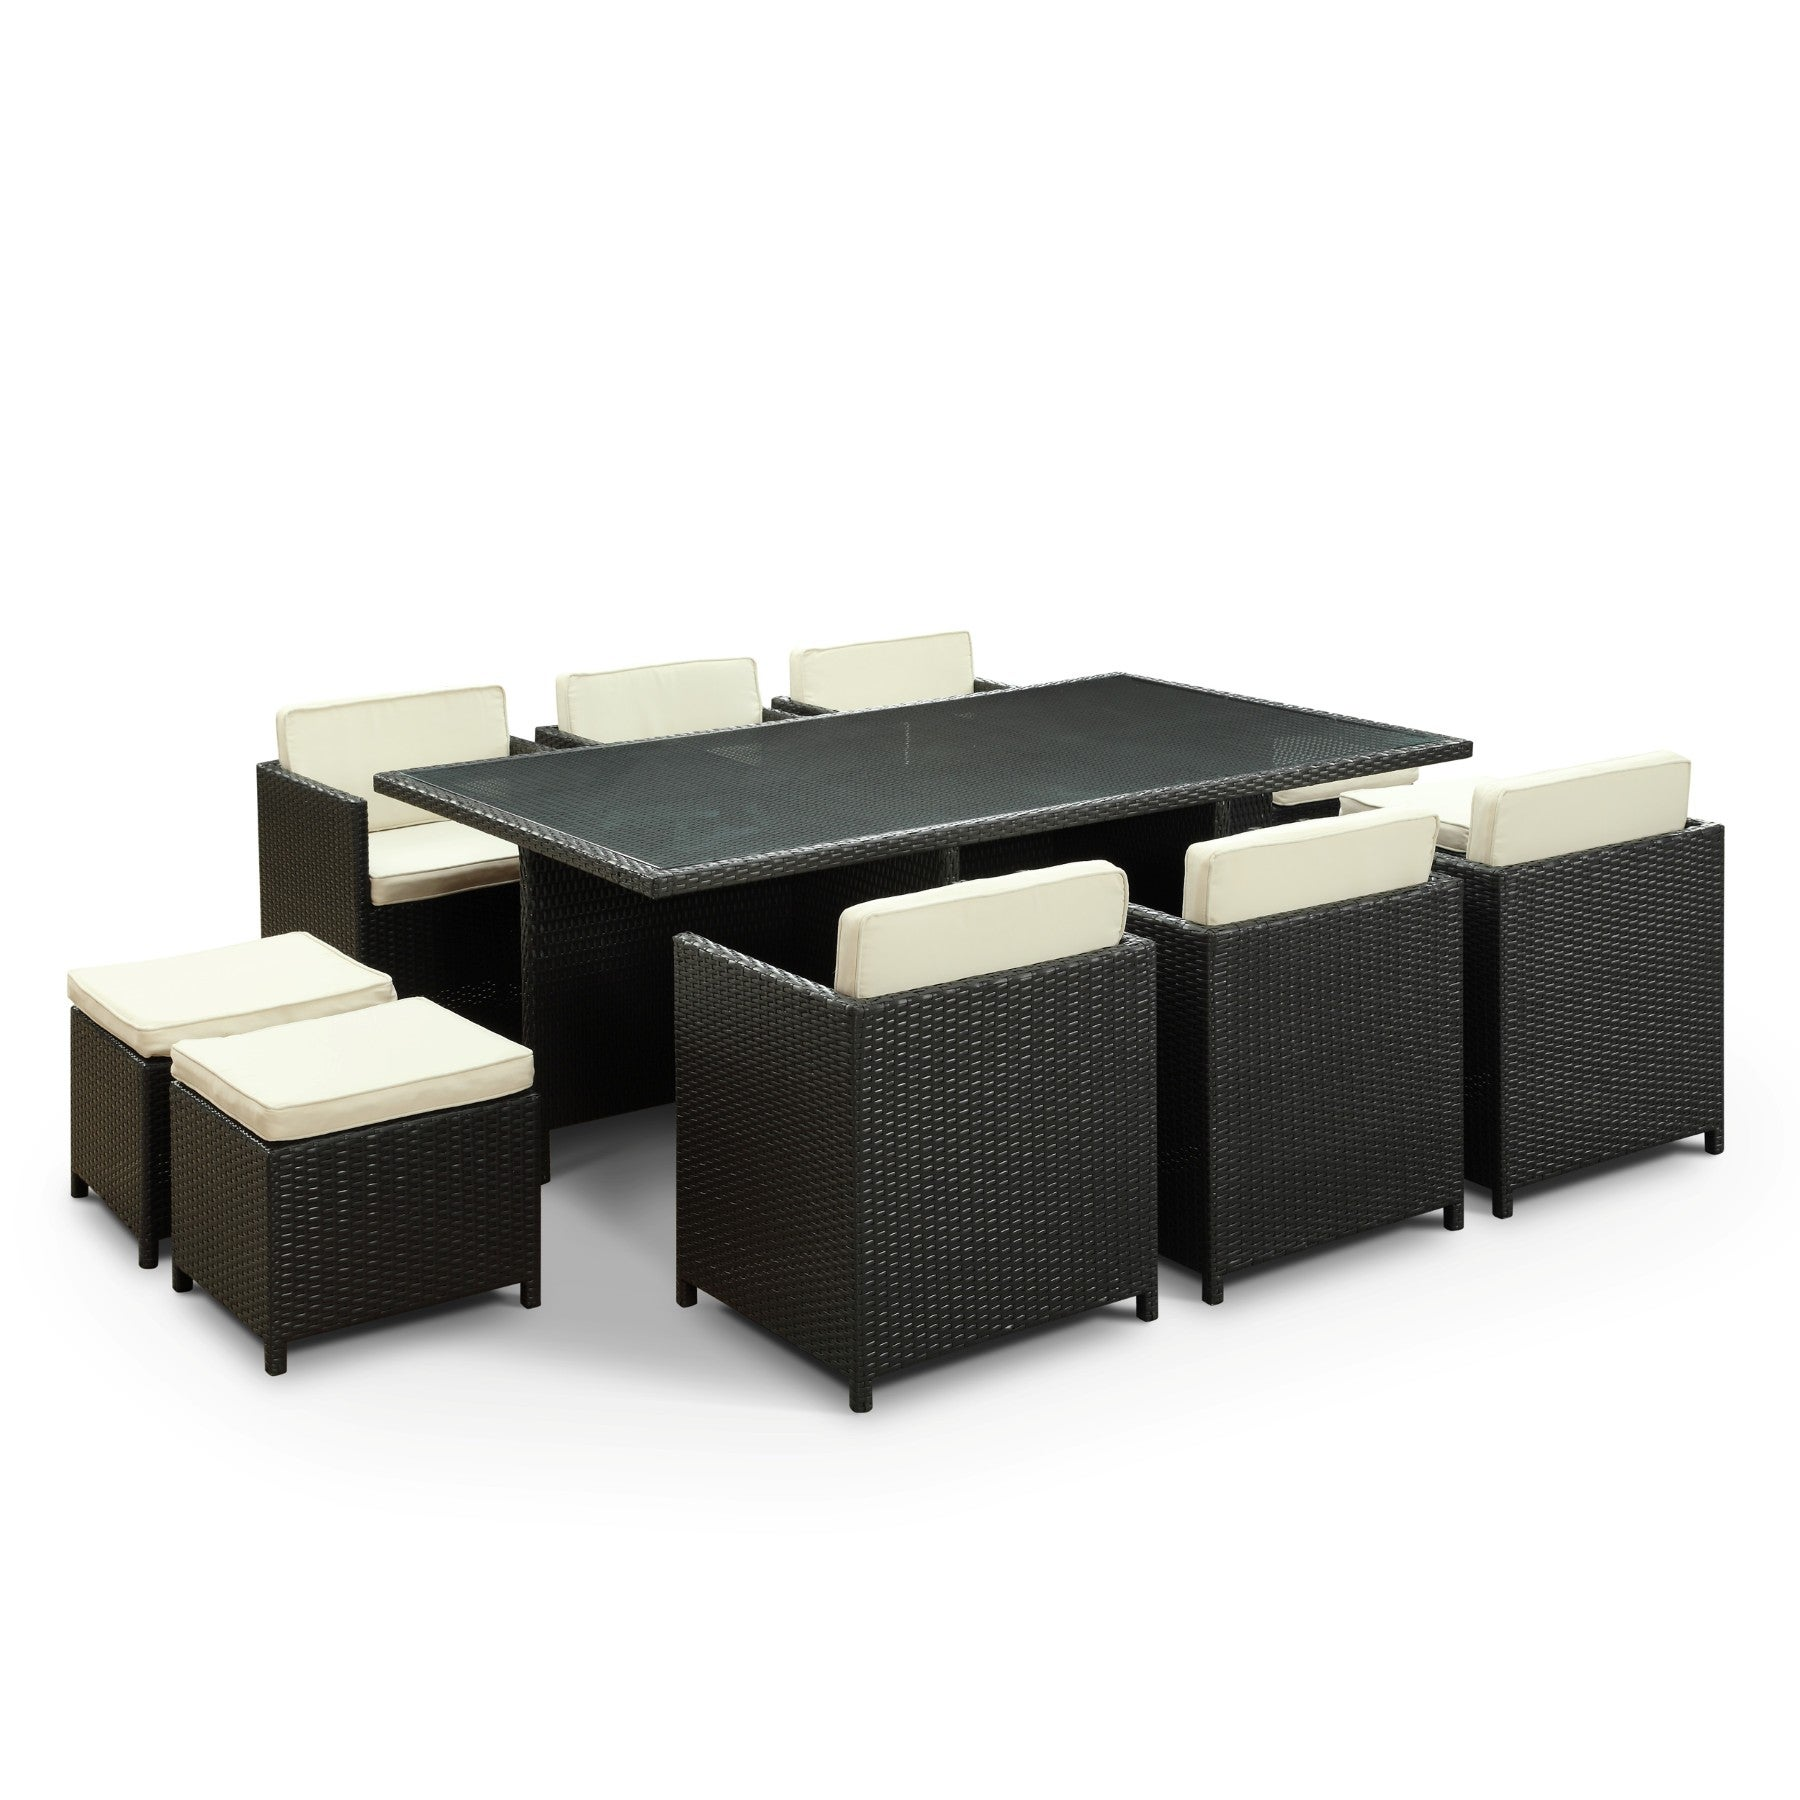 Evo Outdoor 11-piece Dining Set in Espresso with White Cushions (Red)